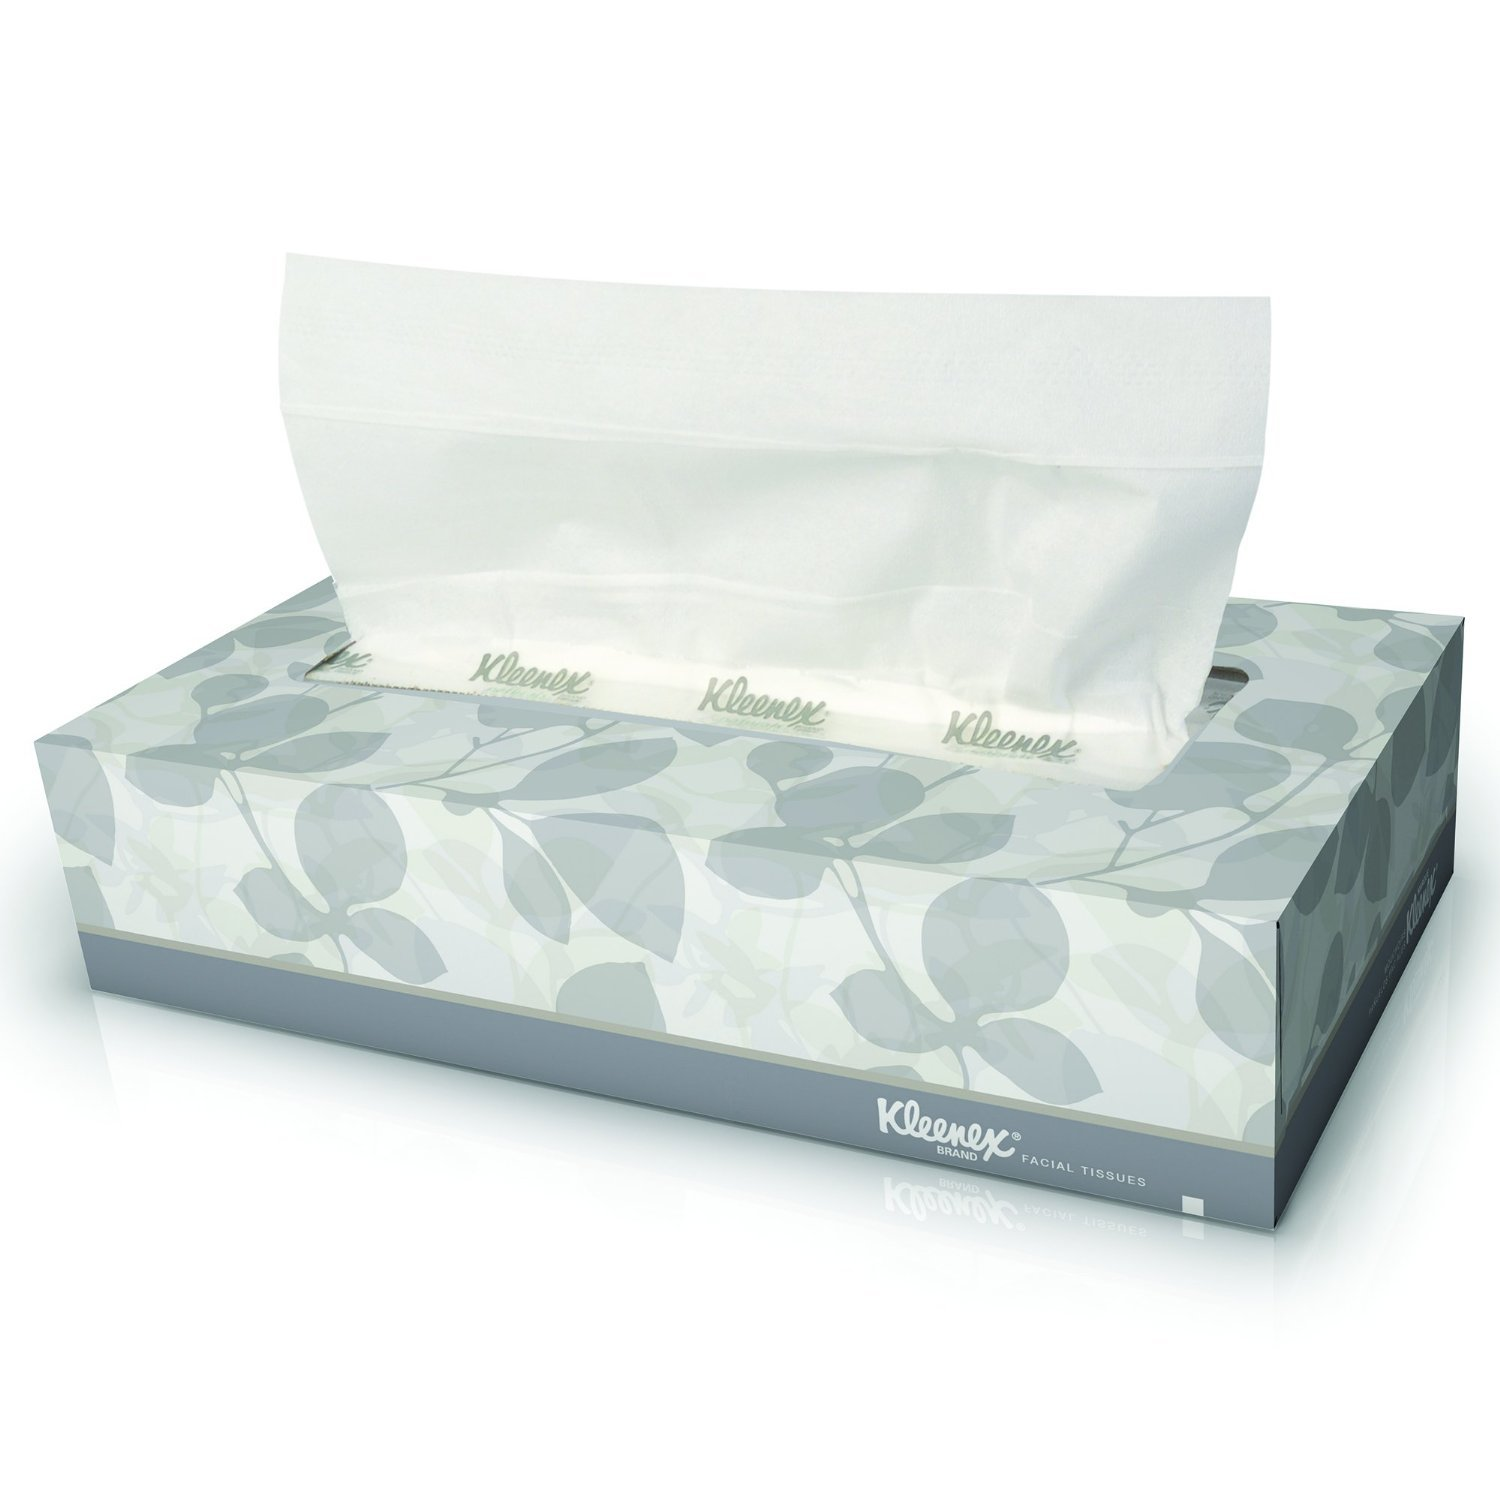 Kleenex Facial Tissue (03076) Wkflhz, Flat Tissue Boxes, (125 Tissues Per Box) - 36 Boxes Total